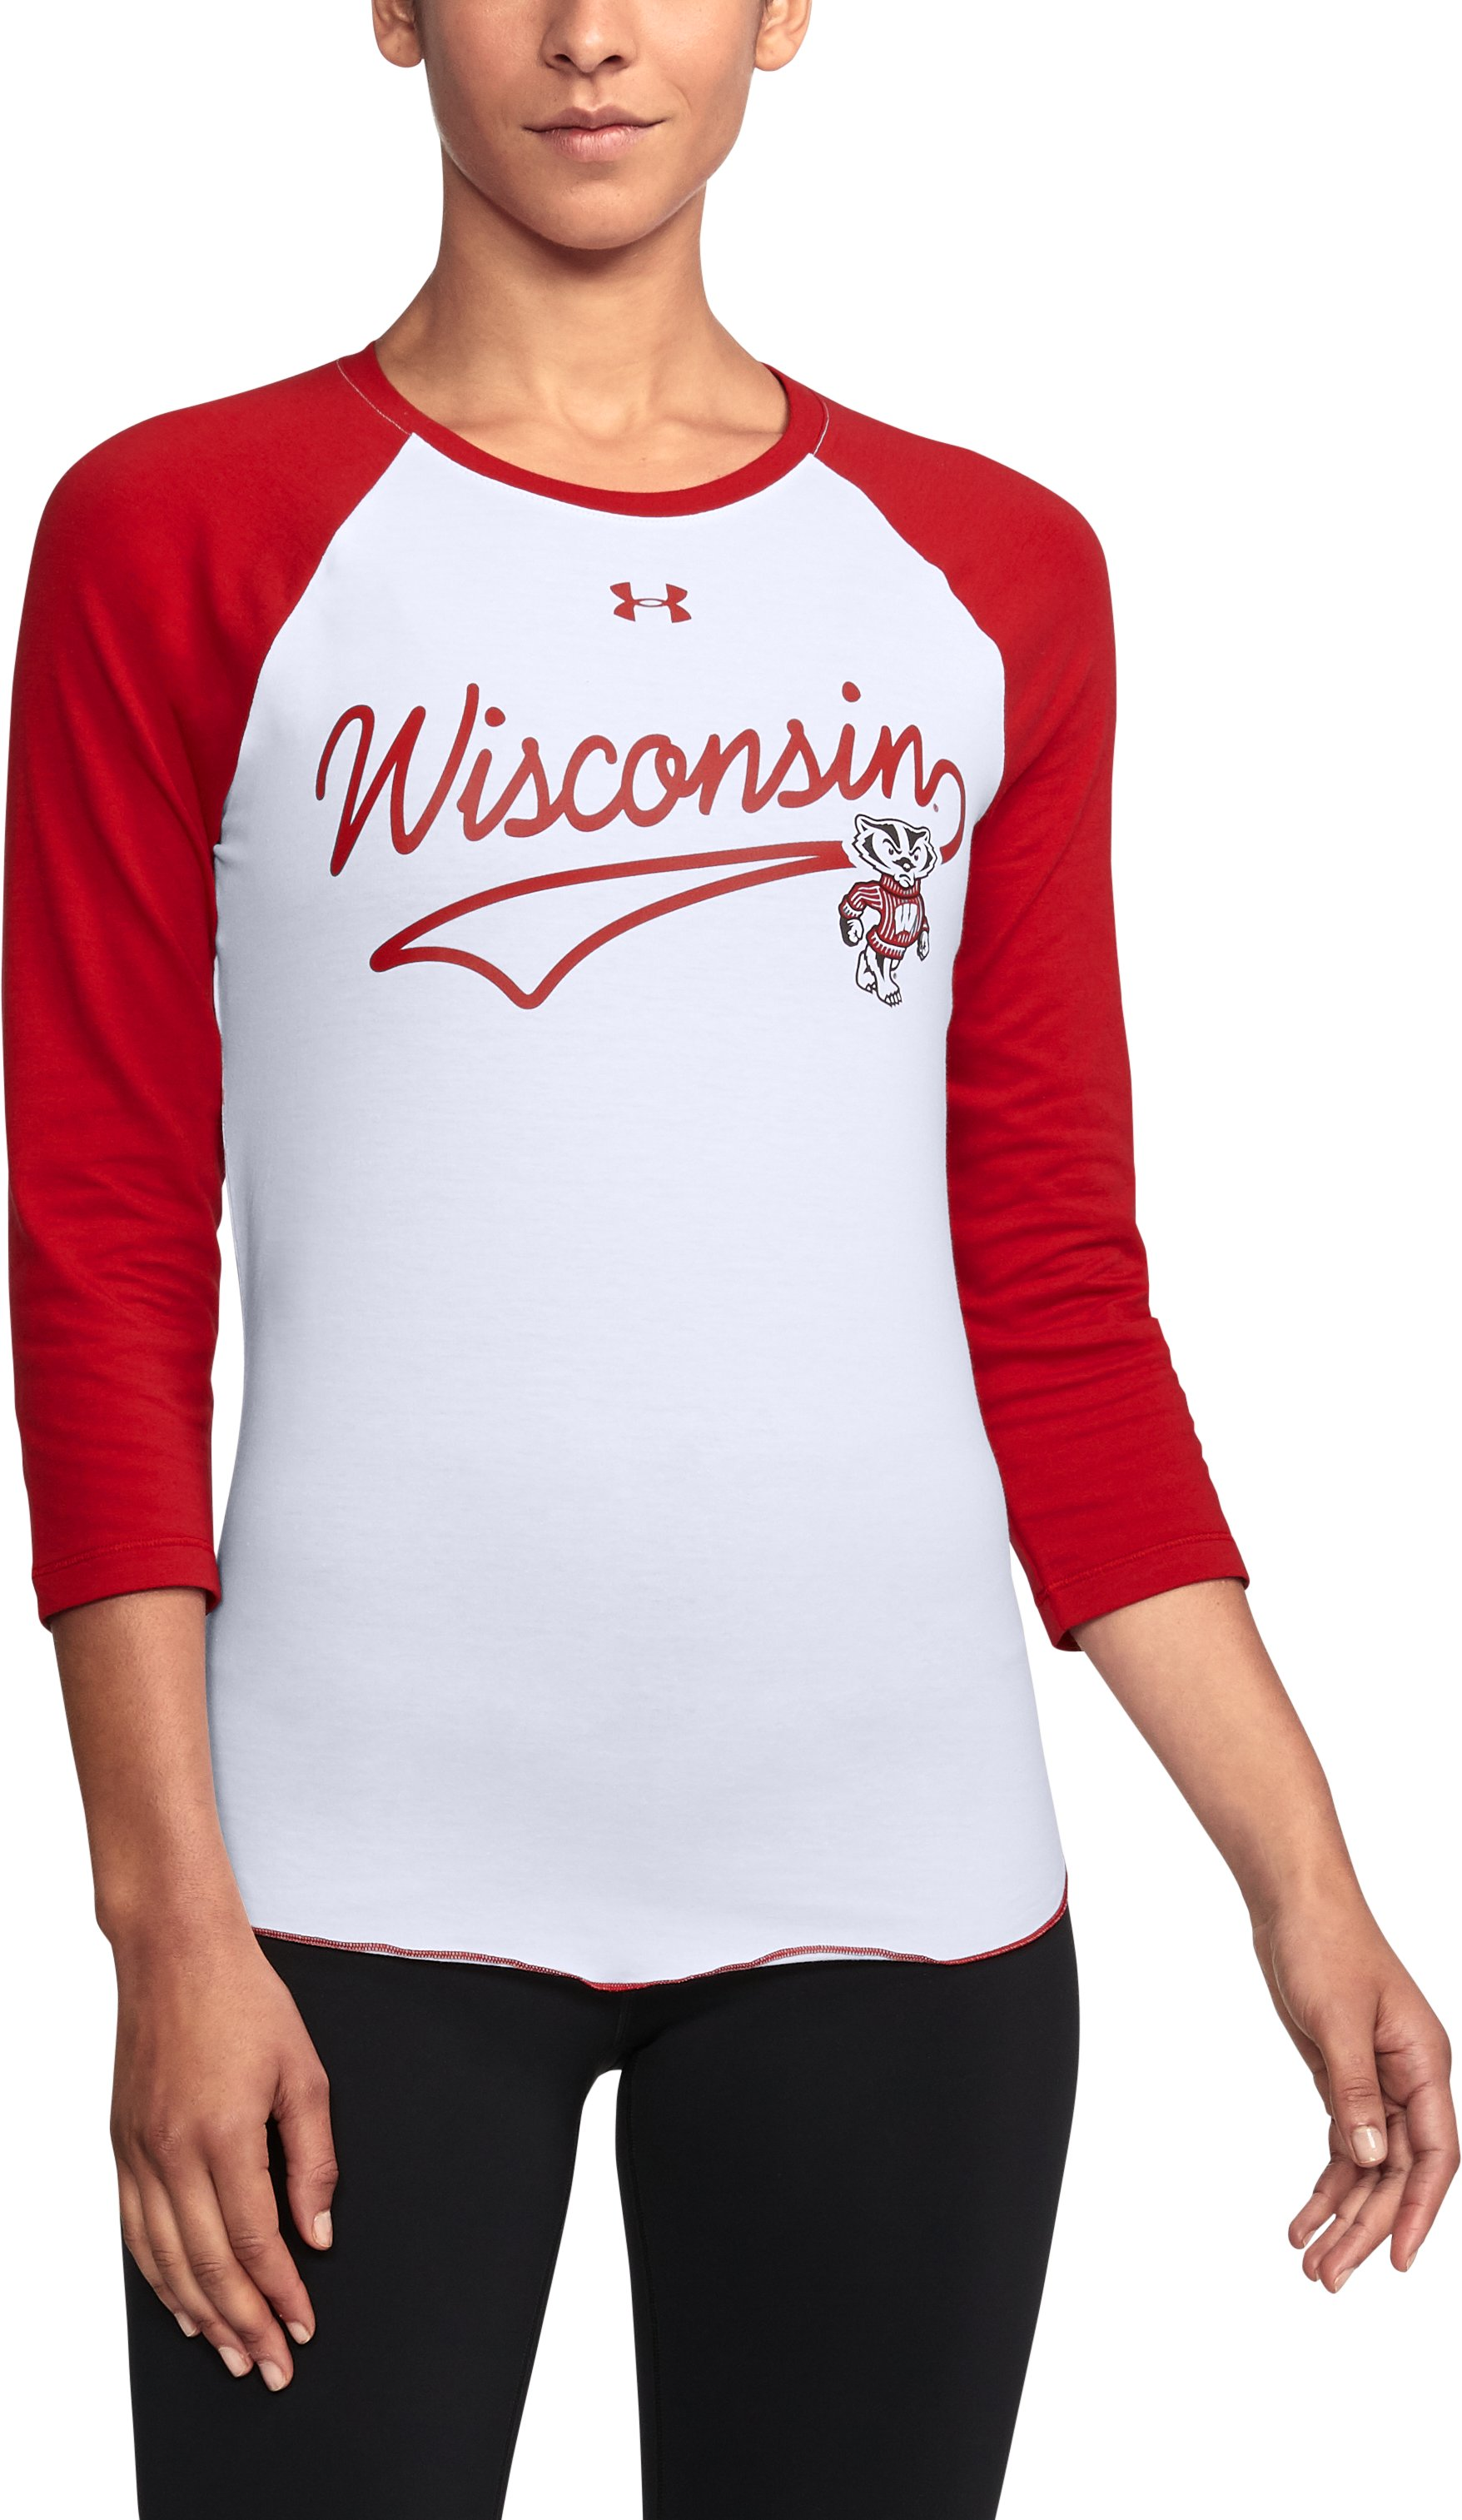 Women's Wisconsin Baseball T-Shirt, Flawless,